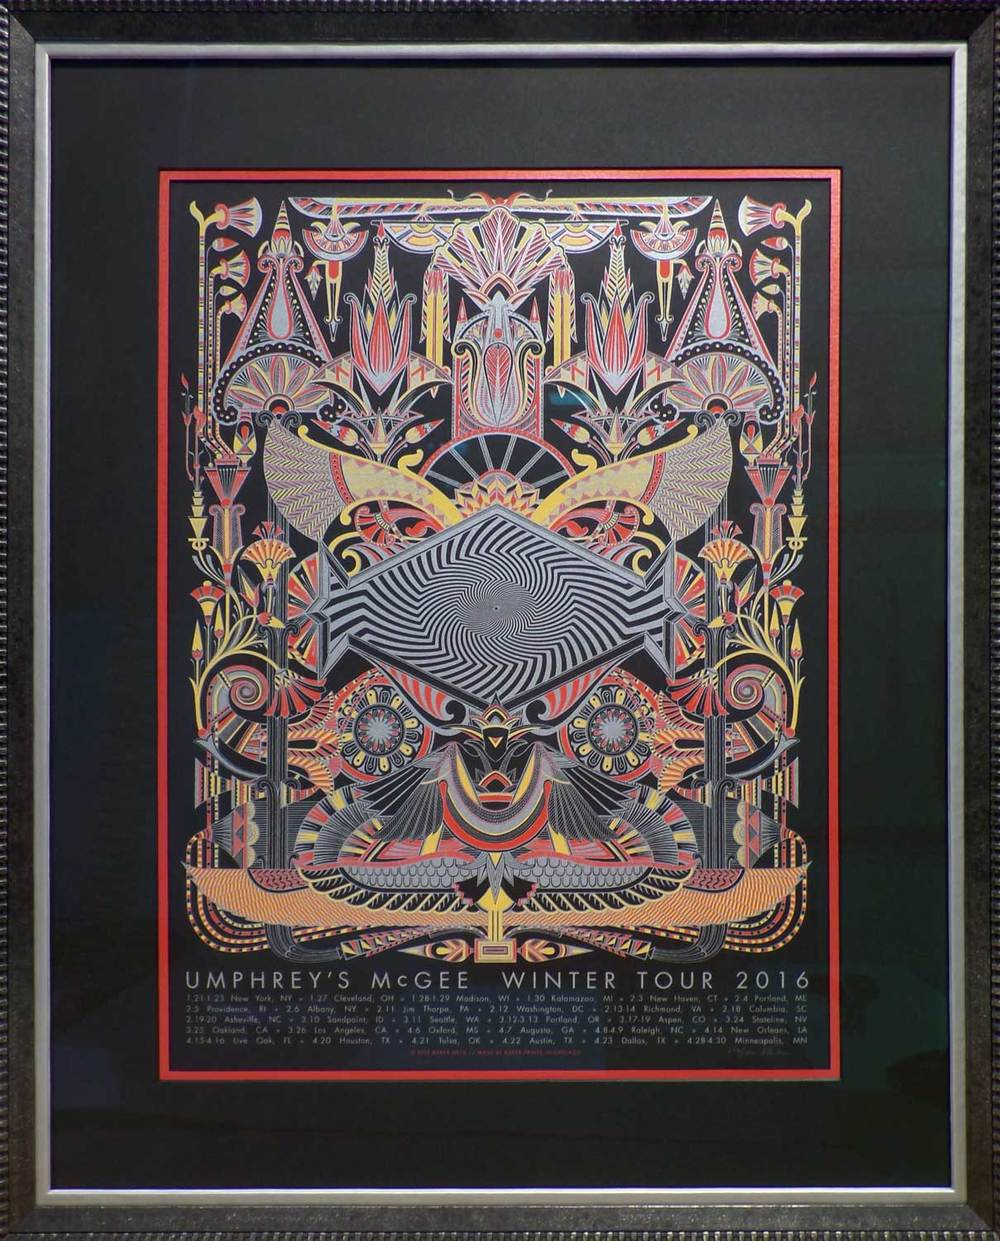 Tour Poster (signed and numbered) with Larson Juhl and Roma Frames